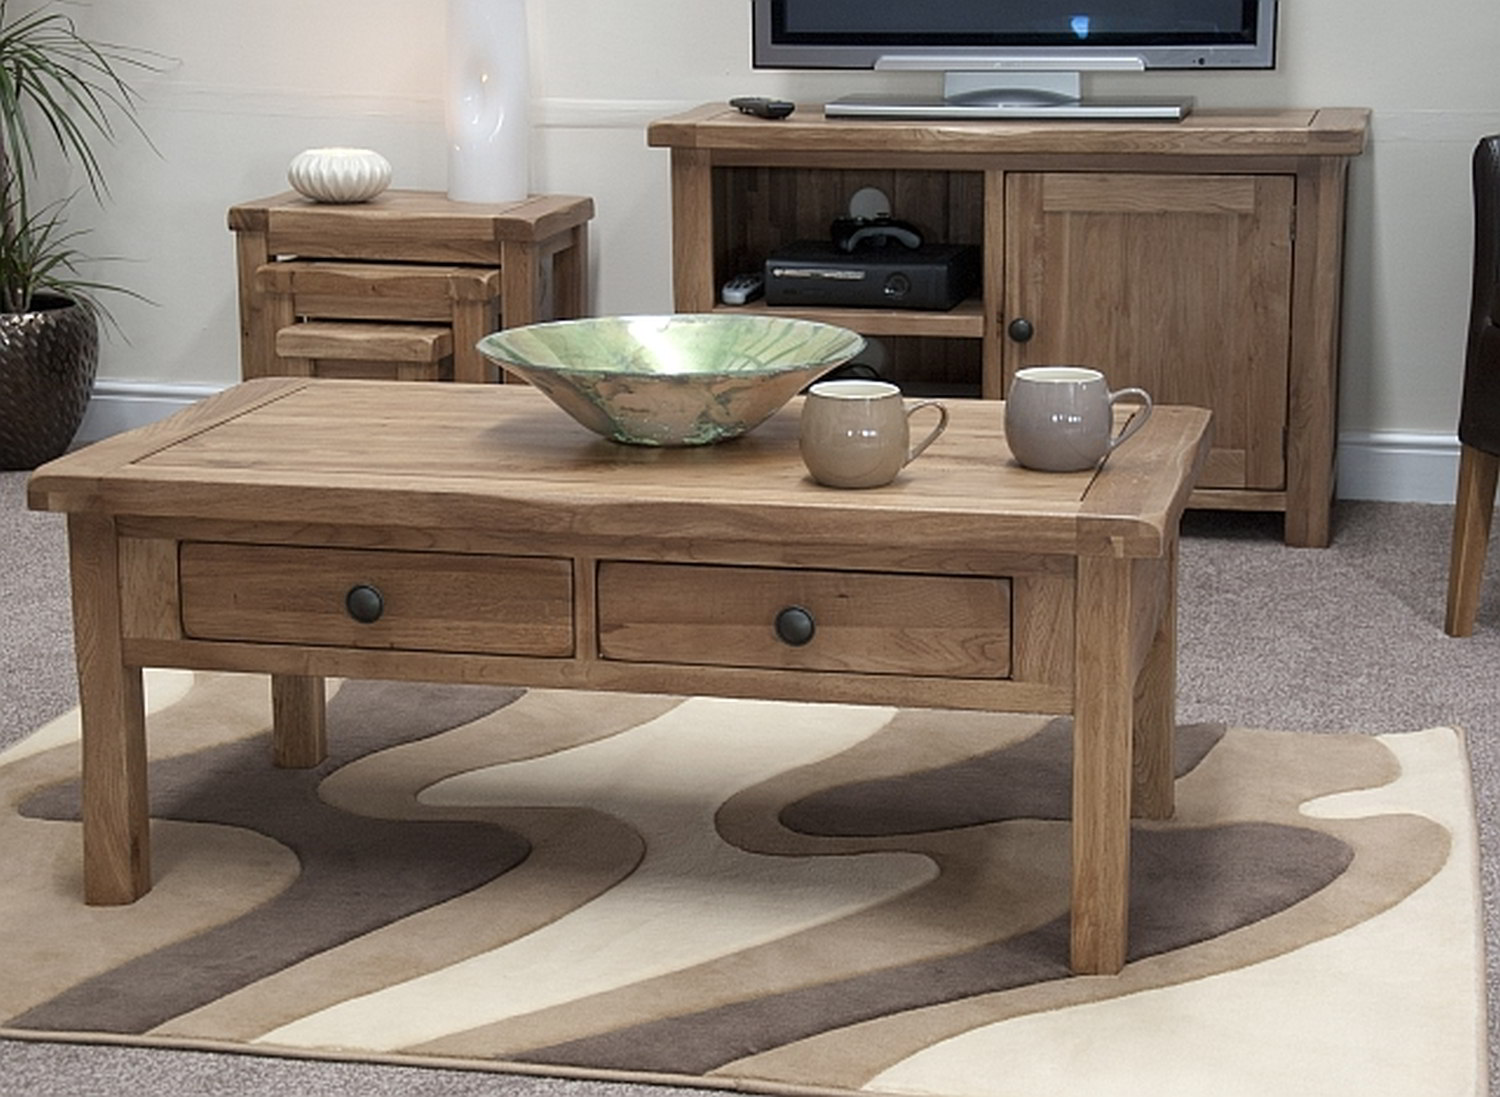 rustic-coffee-tables-and-end-tables-Coffee-Tables-And-End-Tables-is-a-part-of-Rustic-End-Tables-2 (Image 4 of 8)